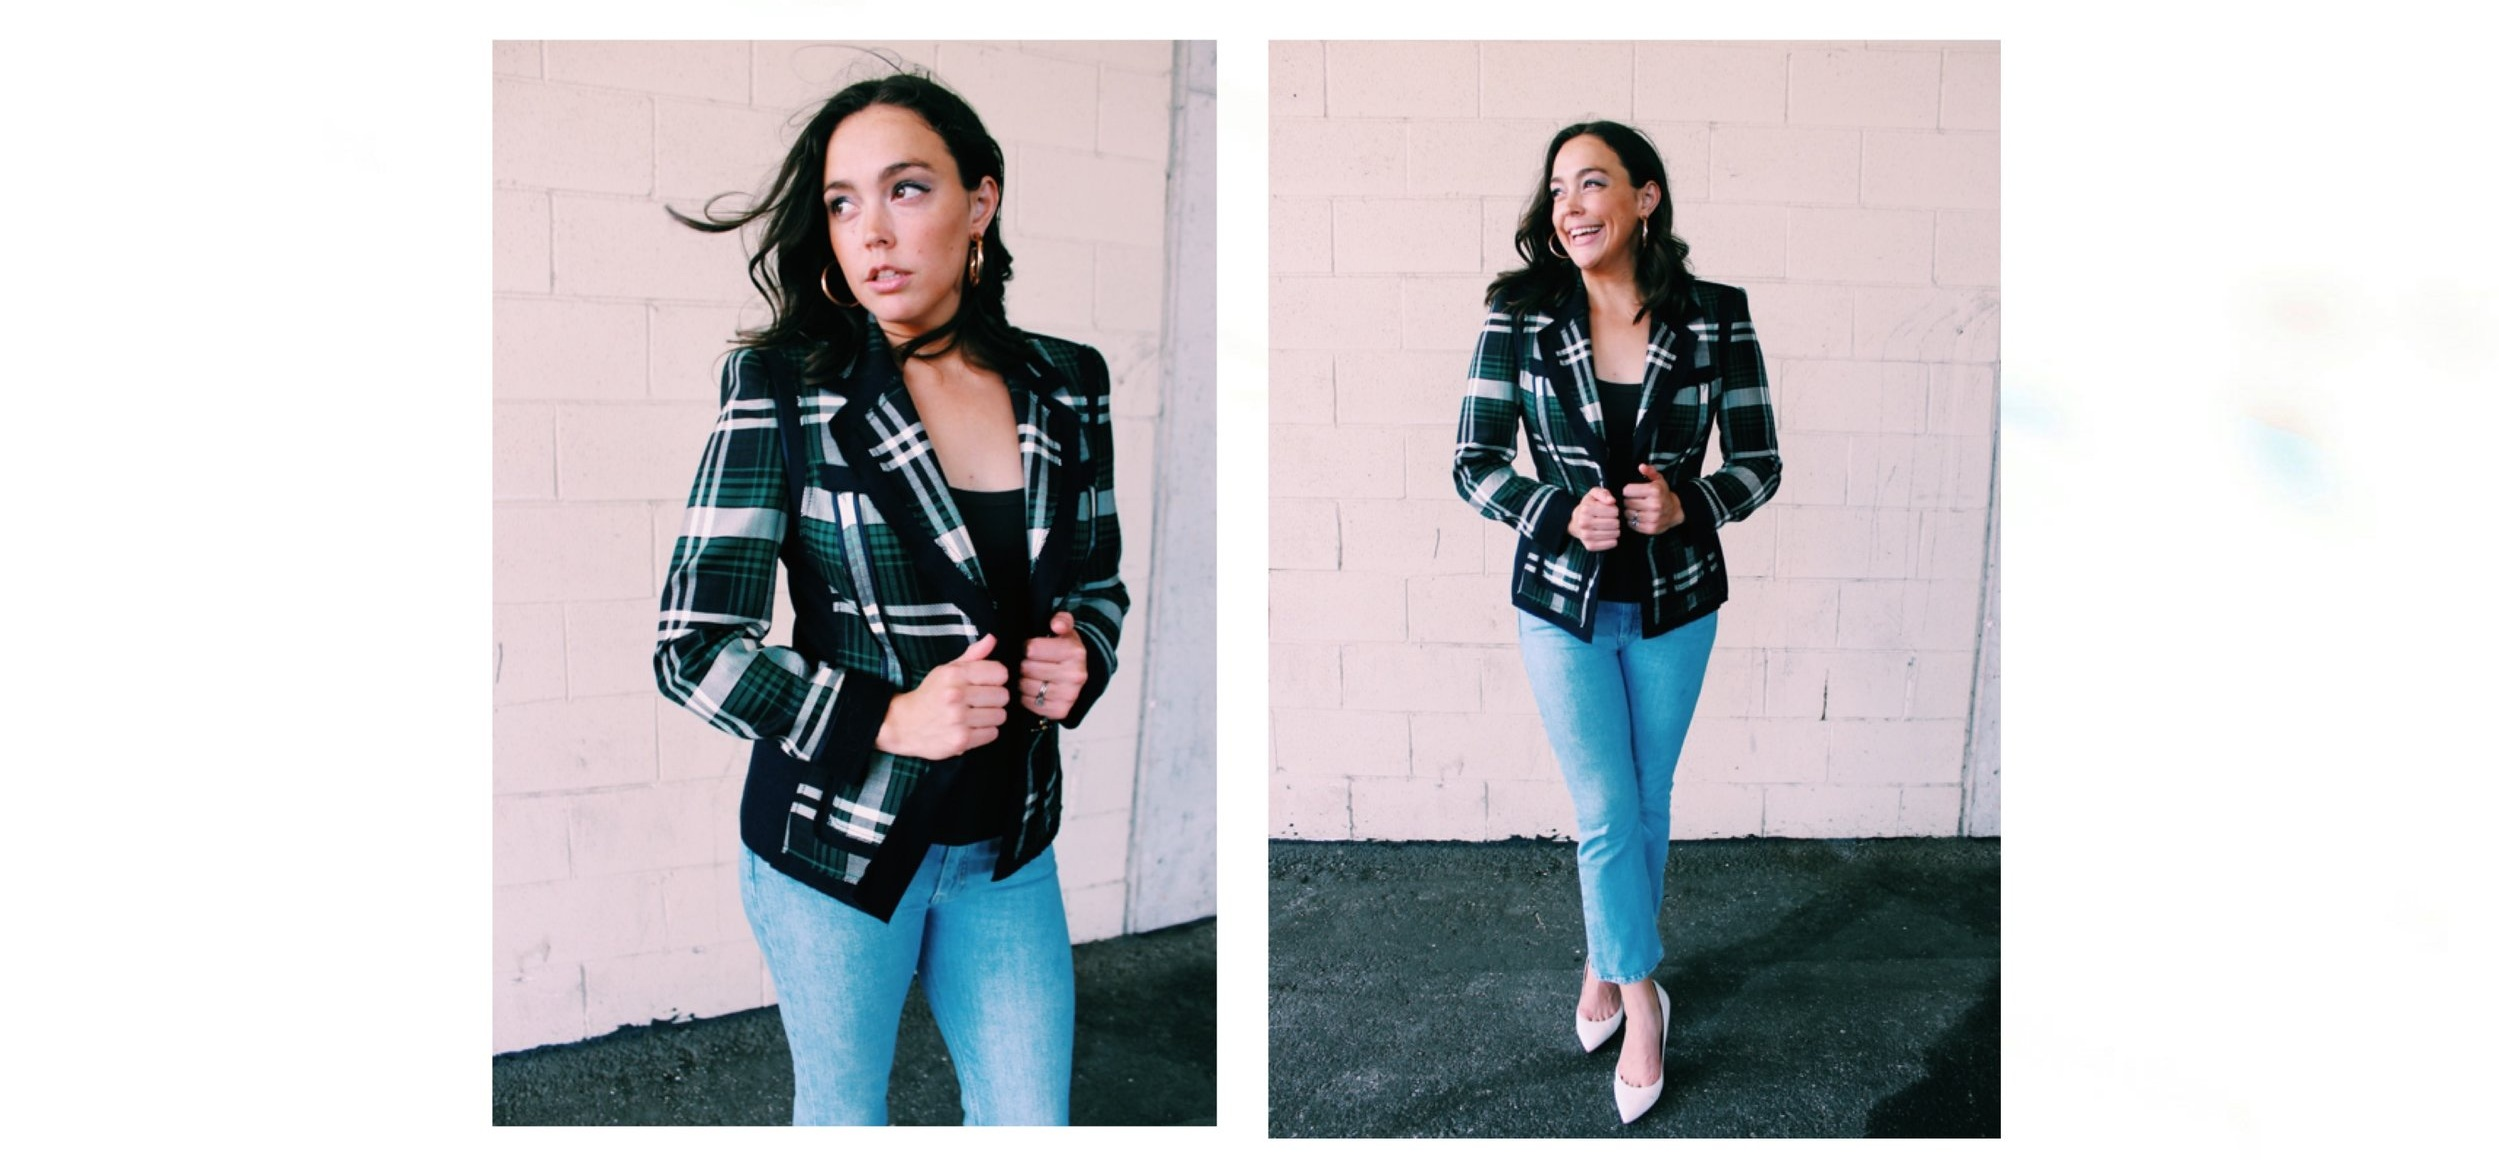 Raquel Greer Gordian shares simple ways to match your classic blazer to a basic tank.